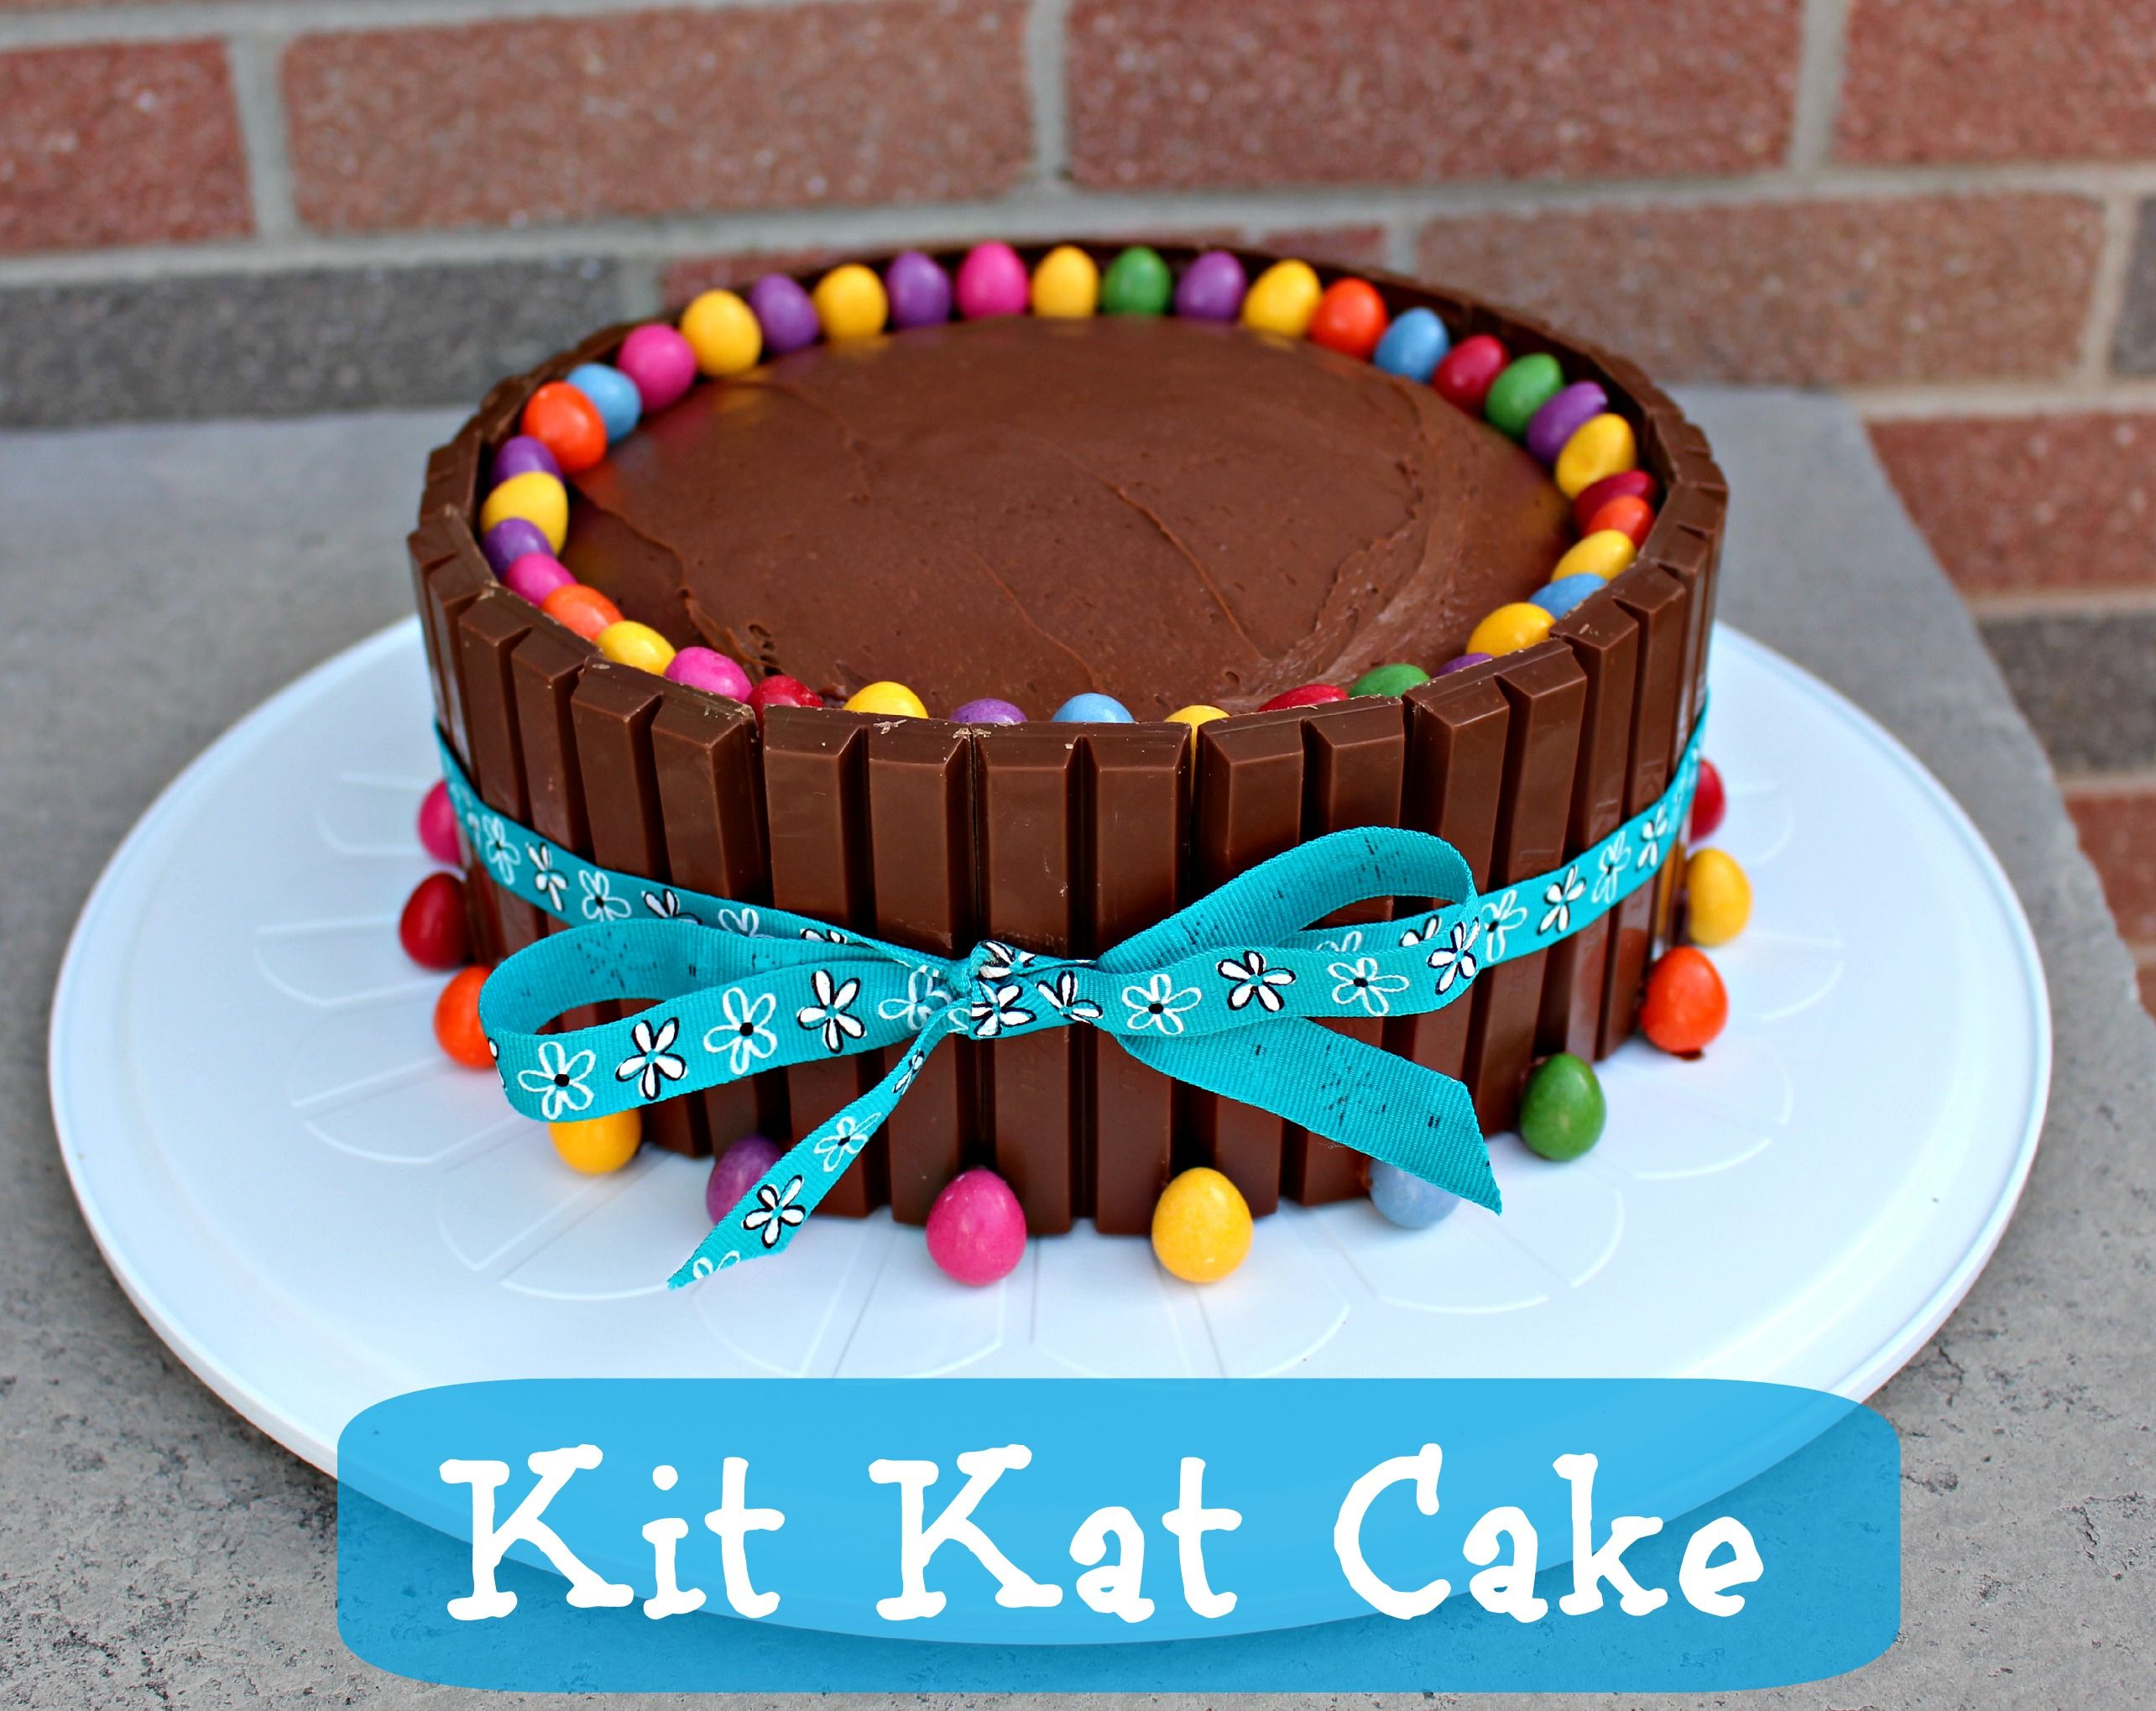 Superb Kit Kat Cake Recipe With Images Kit Kat Cake Easy Birthday Birthday Cards Printable Opercafe Filternl